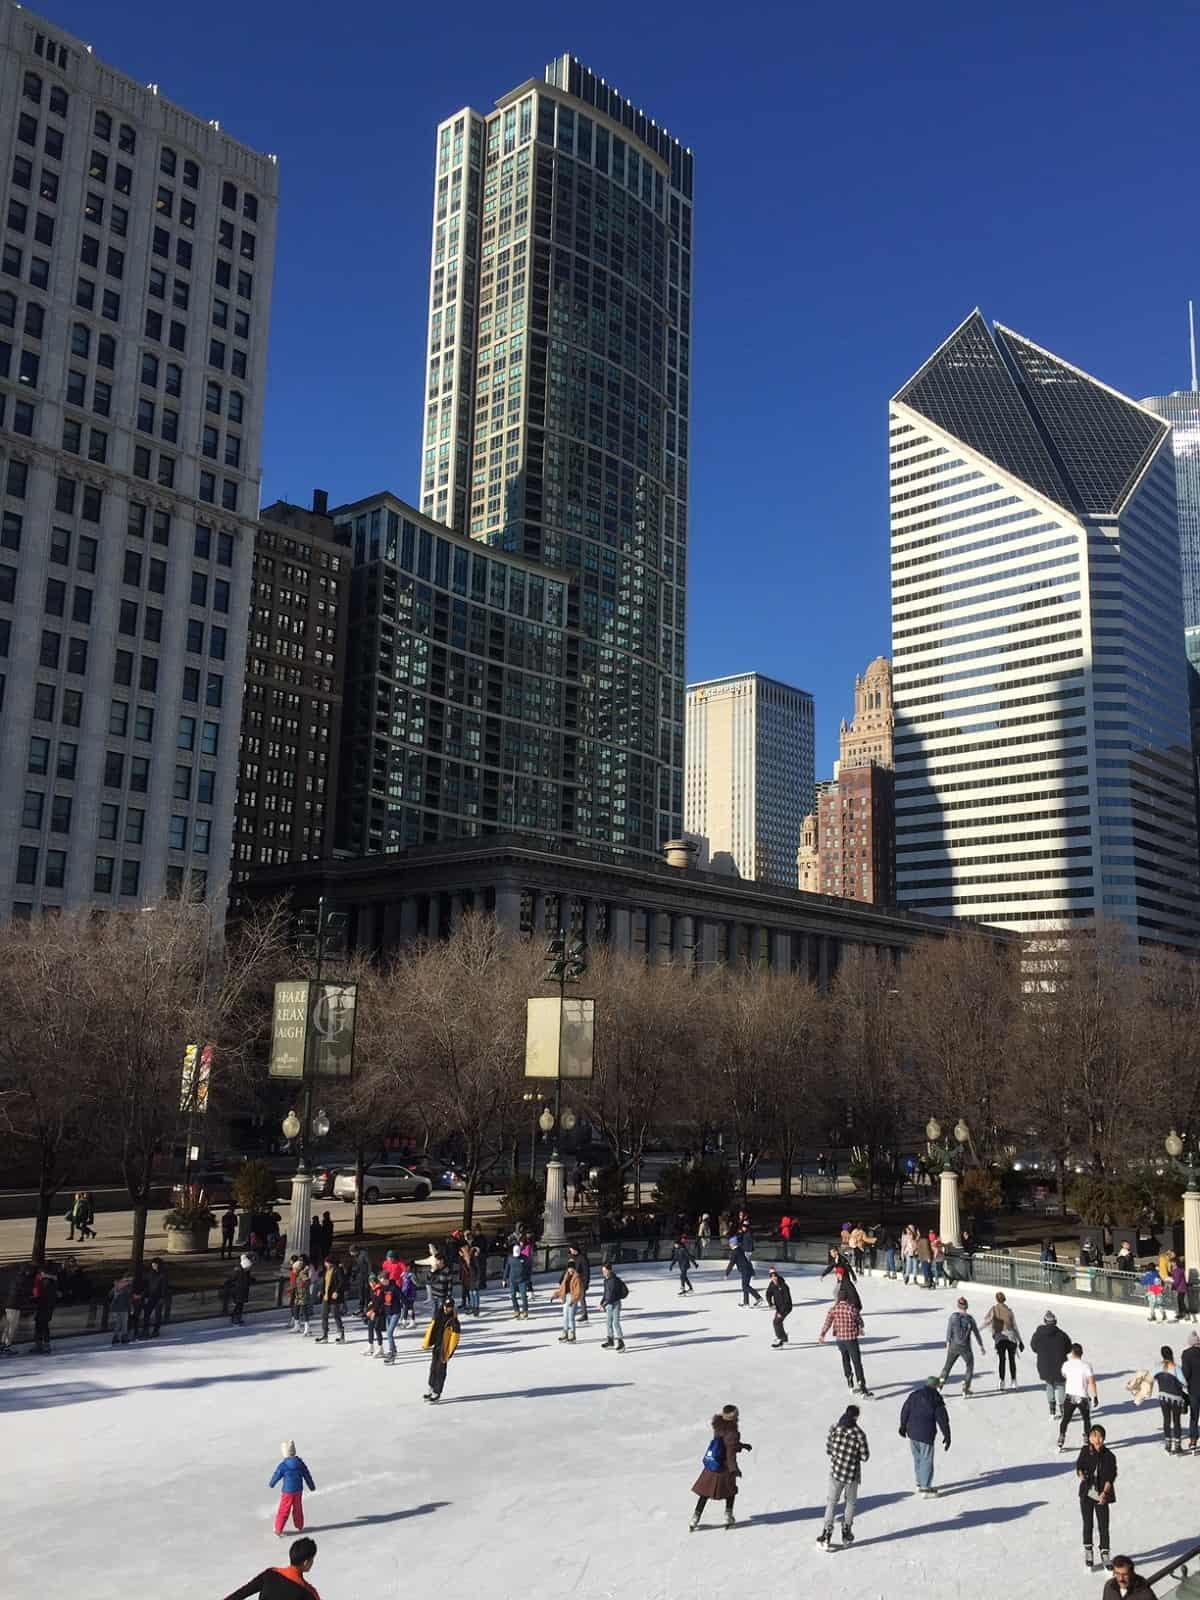 Ice-skating in Chicago